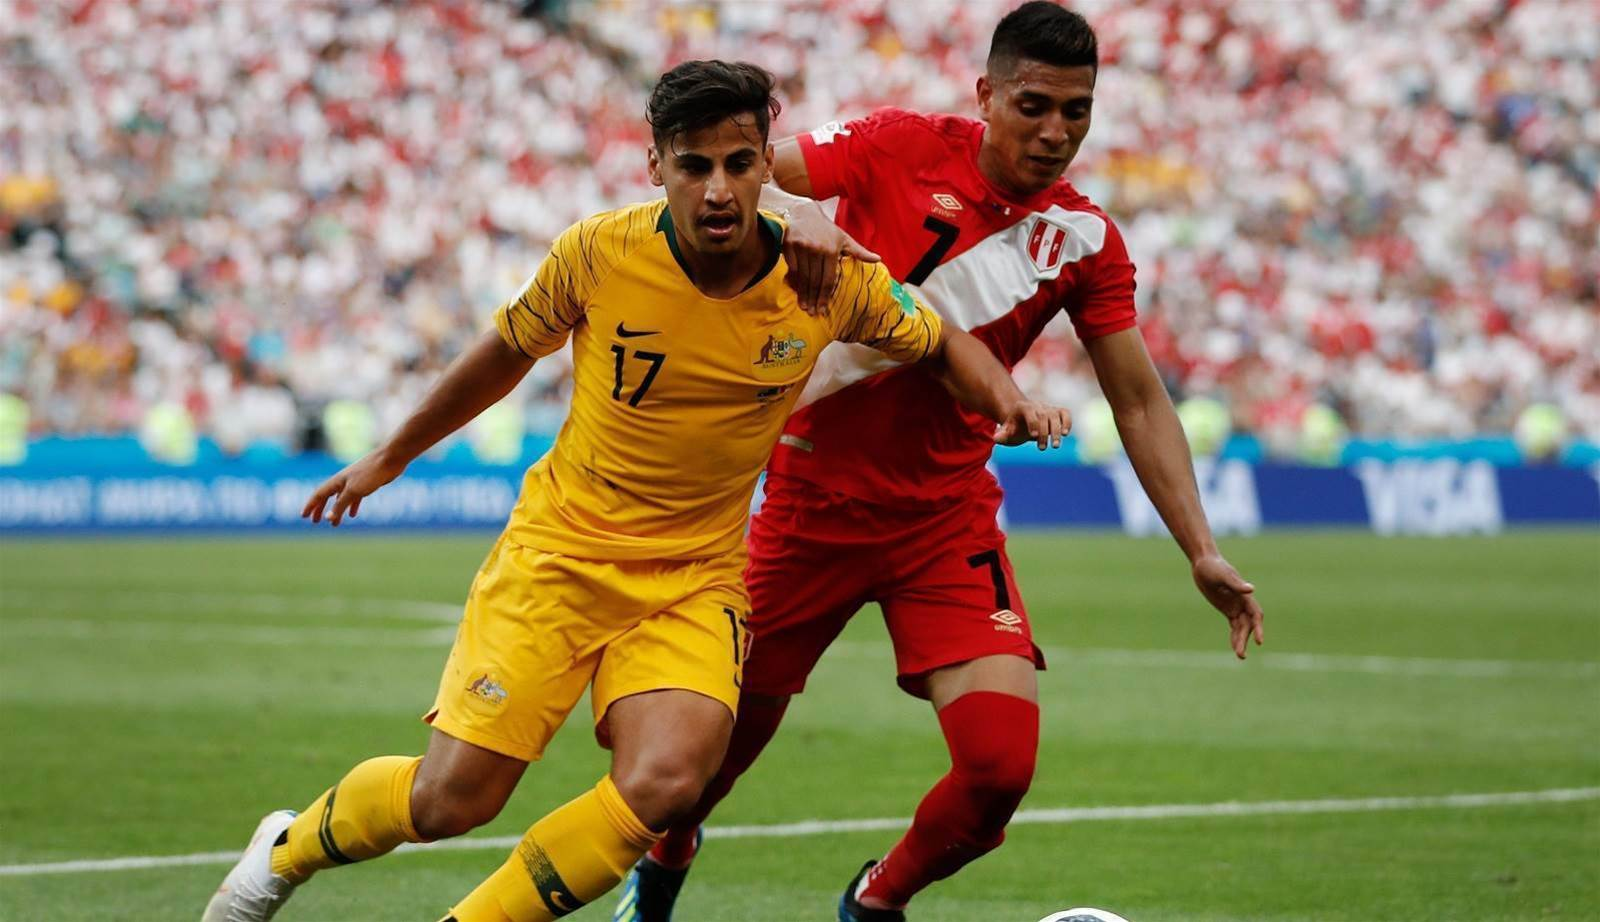 Sports science guru: Arzani can come back stronger